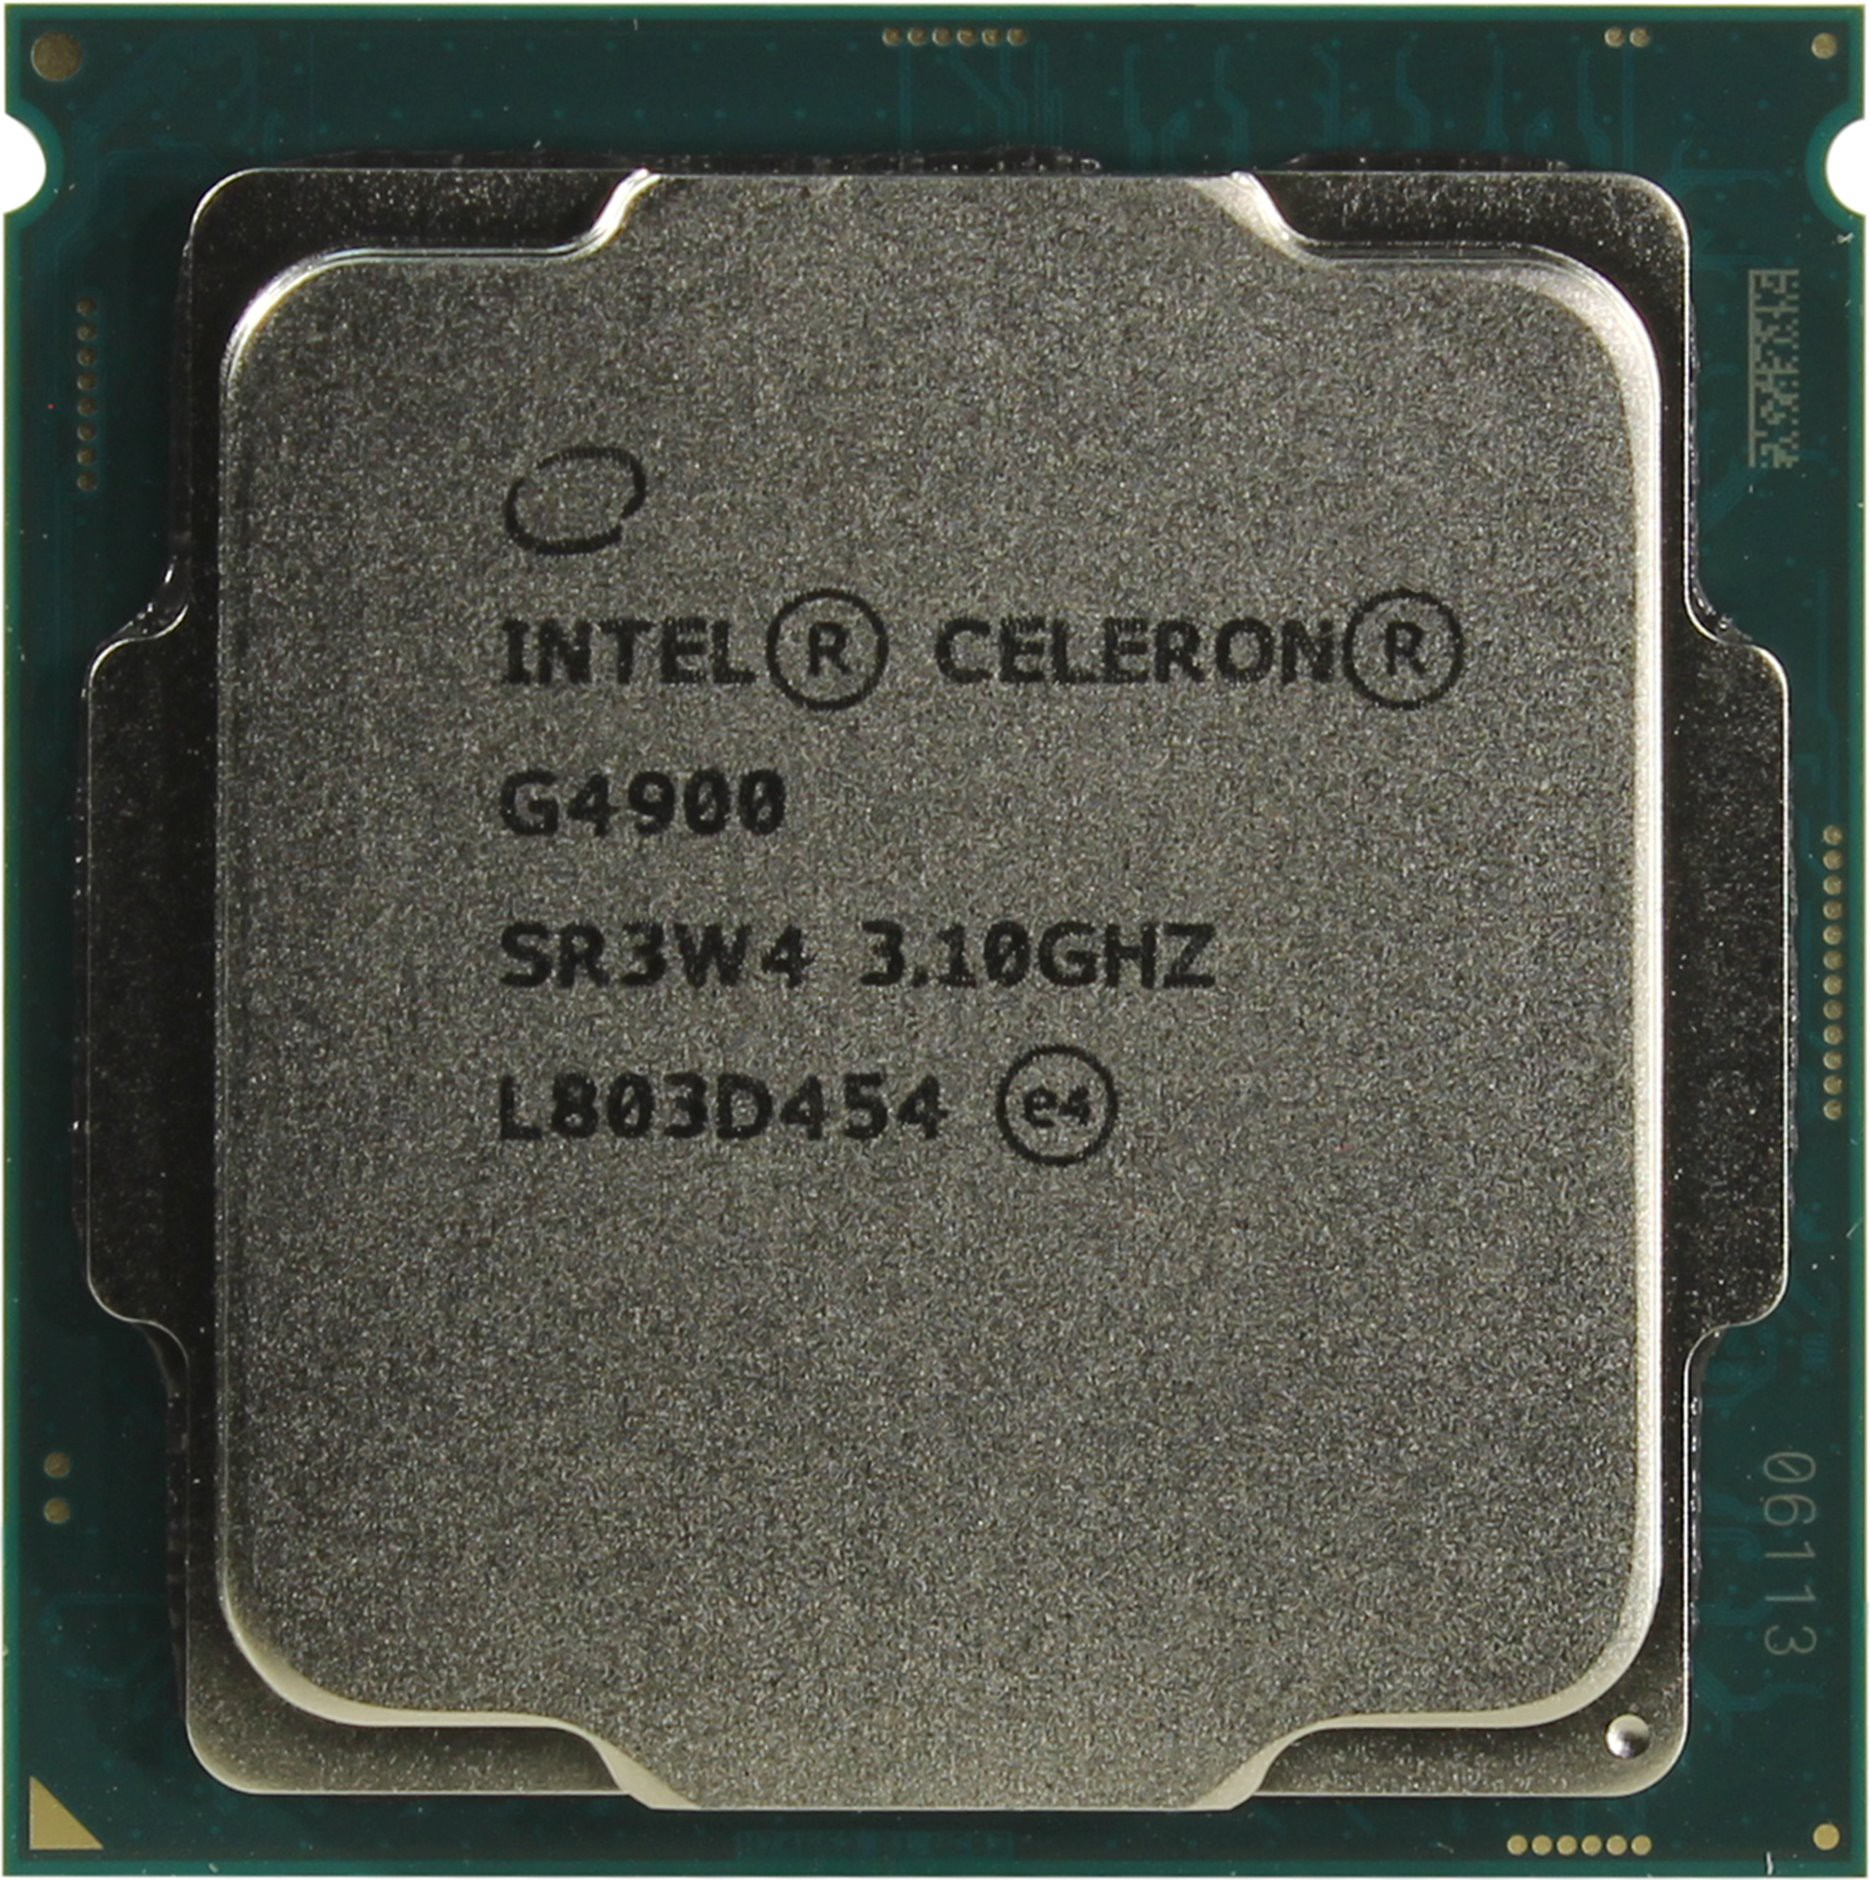 Процессор Intel Celeron G4900 3.1GHz, 2 ядра / 2 потока, 2MB, HD Graphics 610, 54W (Socket 1151)